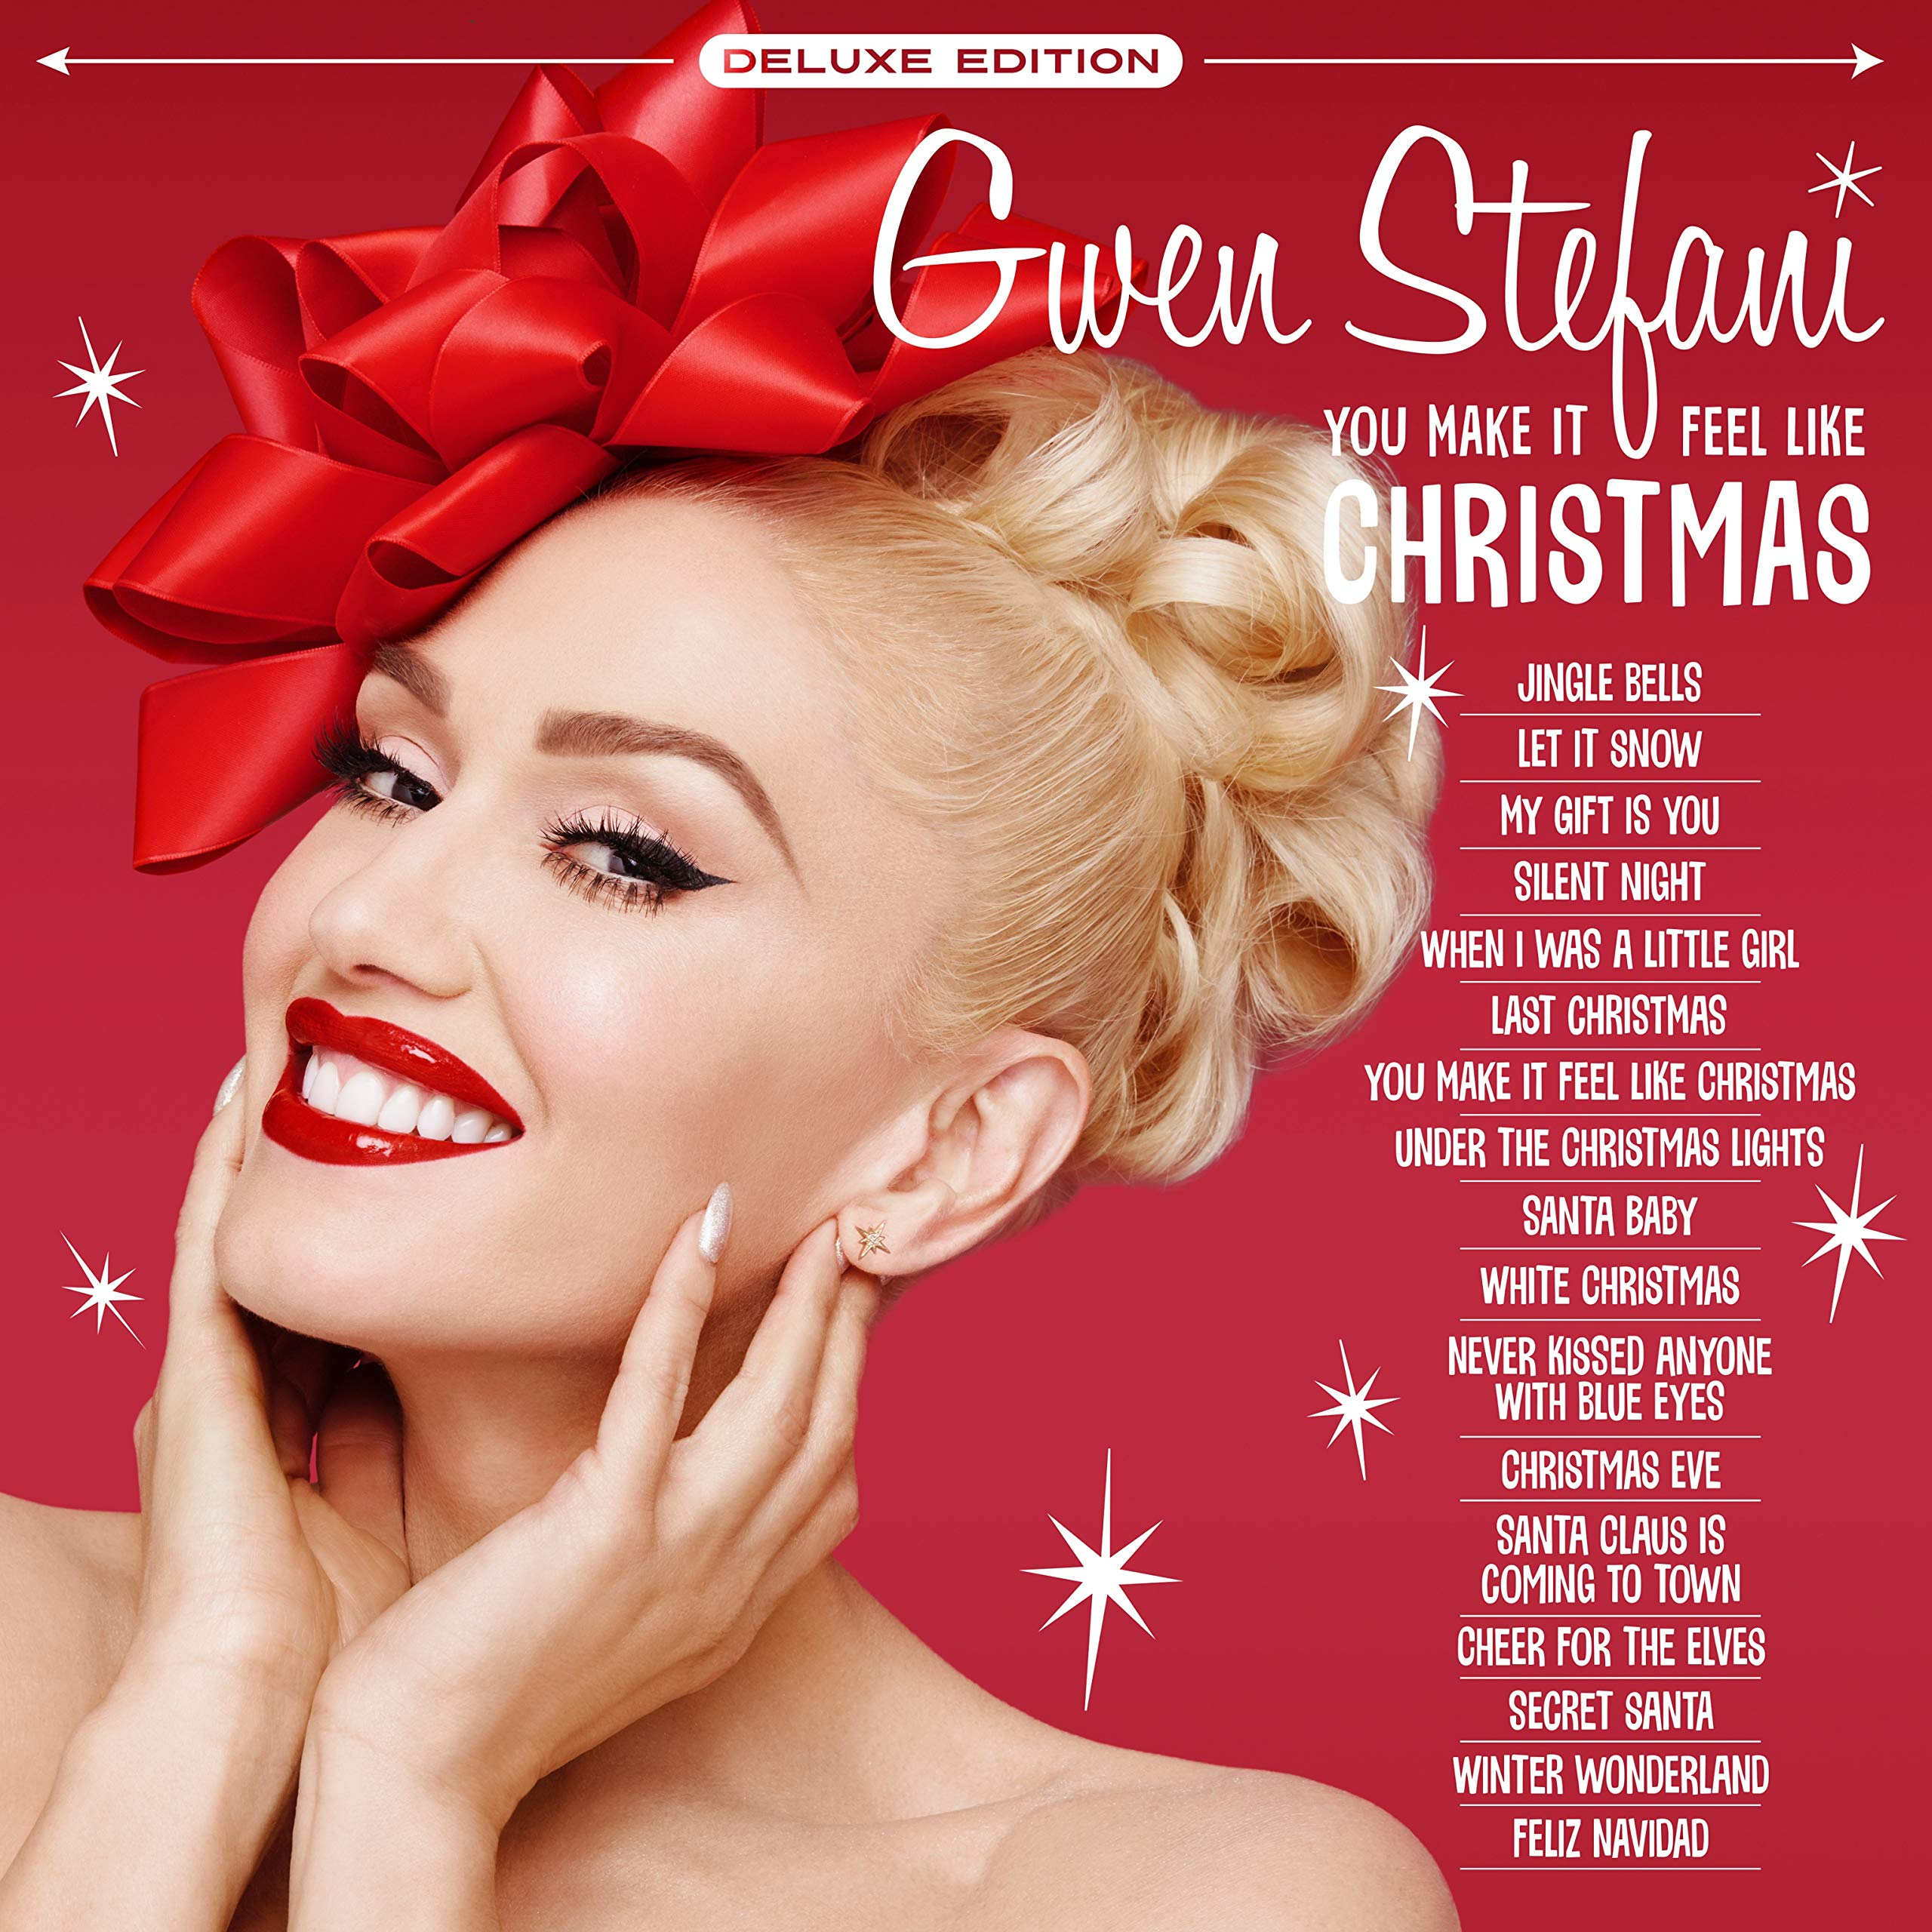 CD : Gwen Stefani - You Make It Feel Like Christmas (Deluxe Edition)